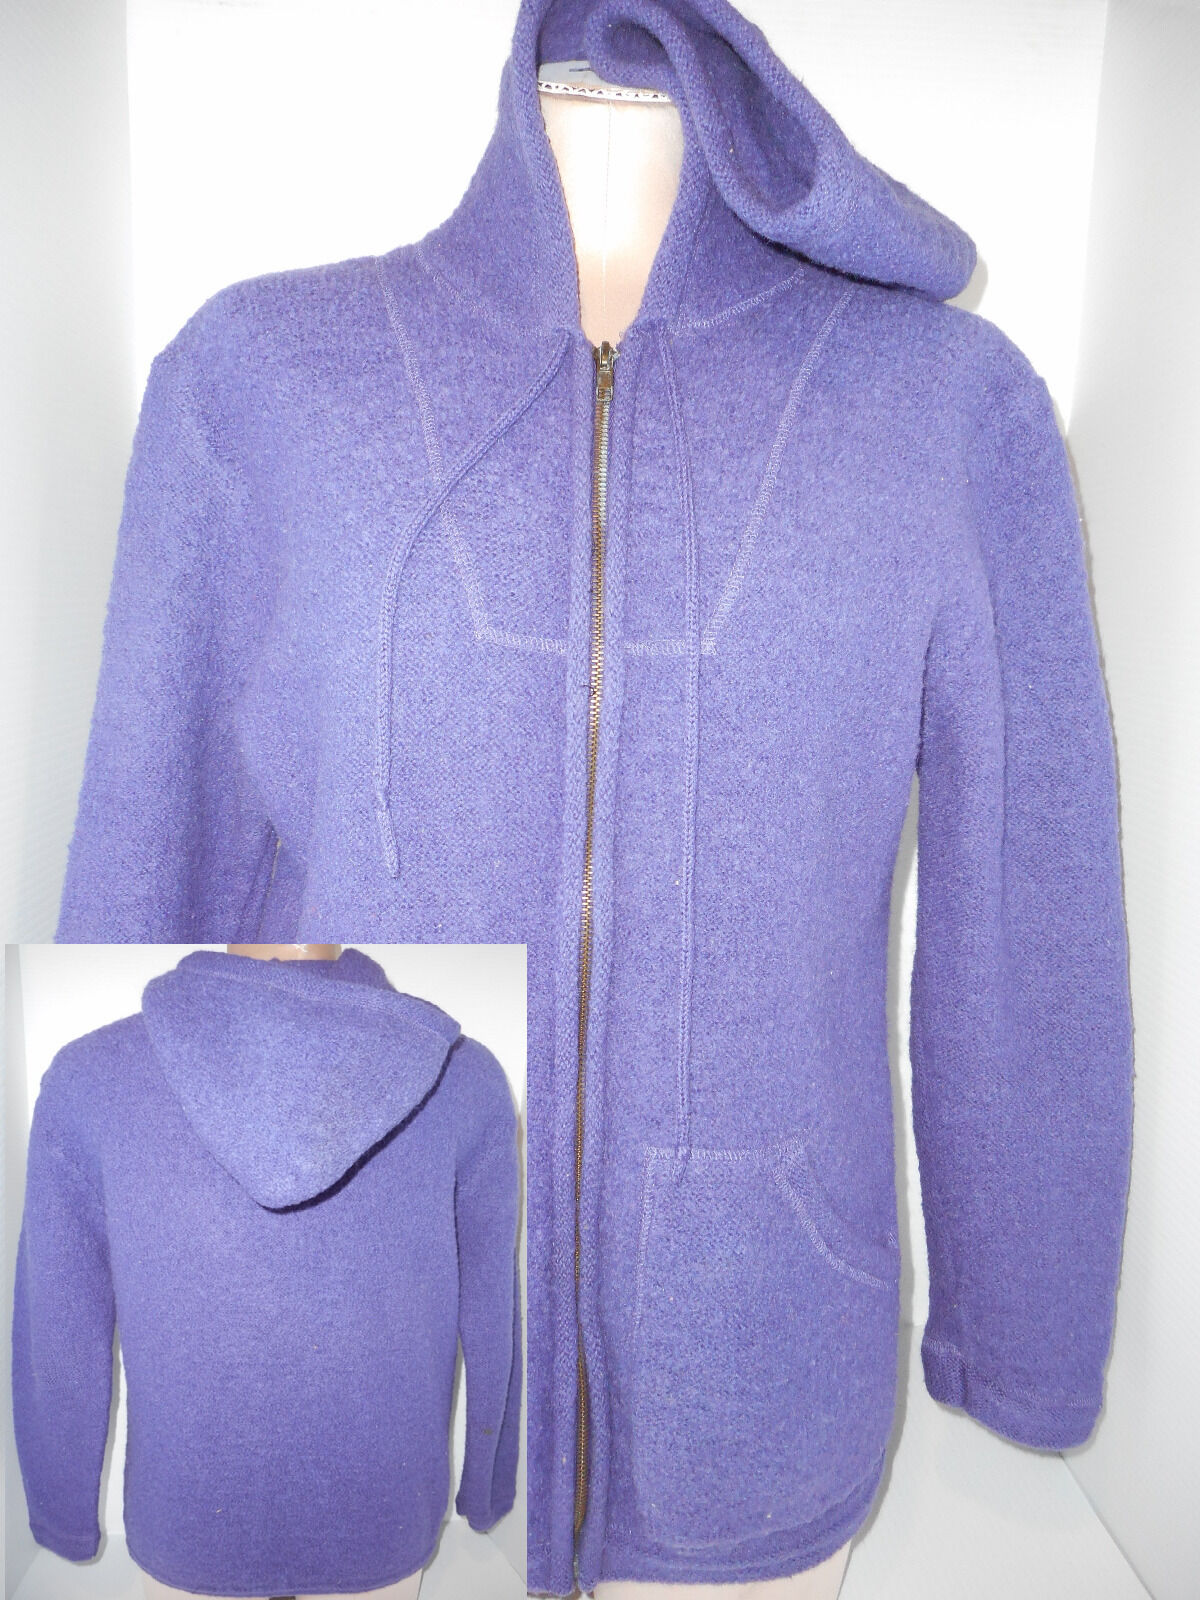 GALLAGHER Full Zip Front Womens Hoodie Sweater Size S Small Purple Wool